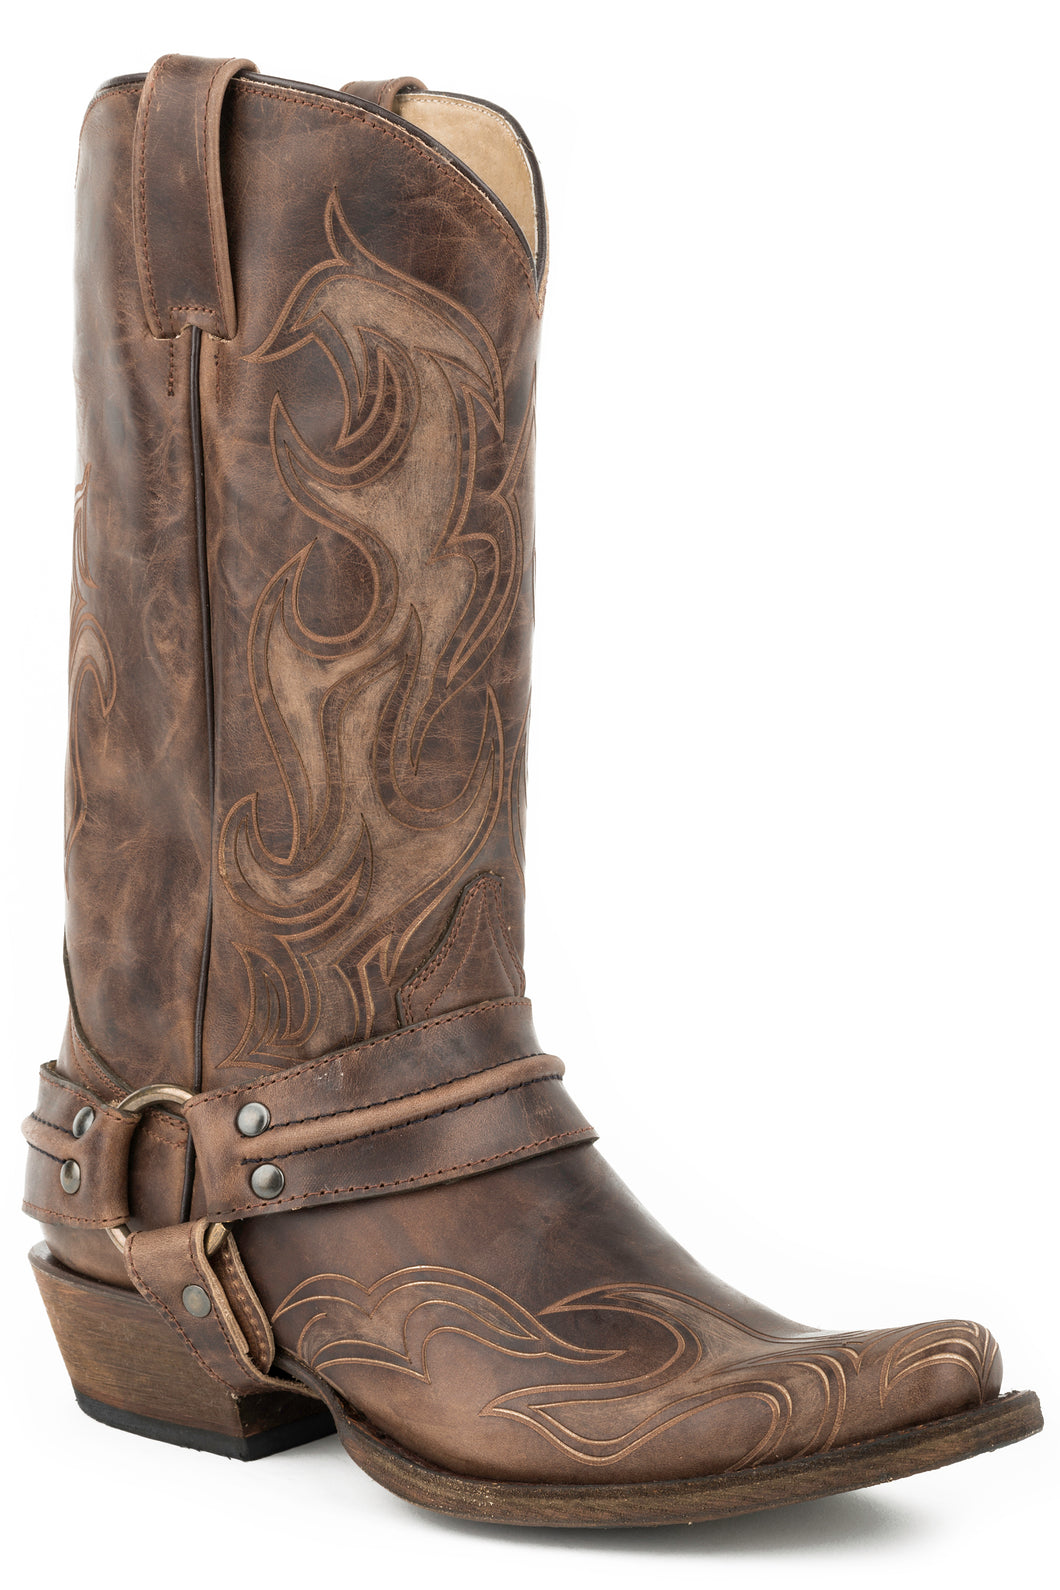 Hurricane Bandit Boot Mens Boot Brown Shaft And Lazer Vamp